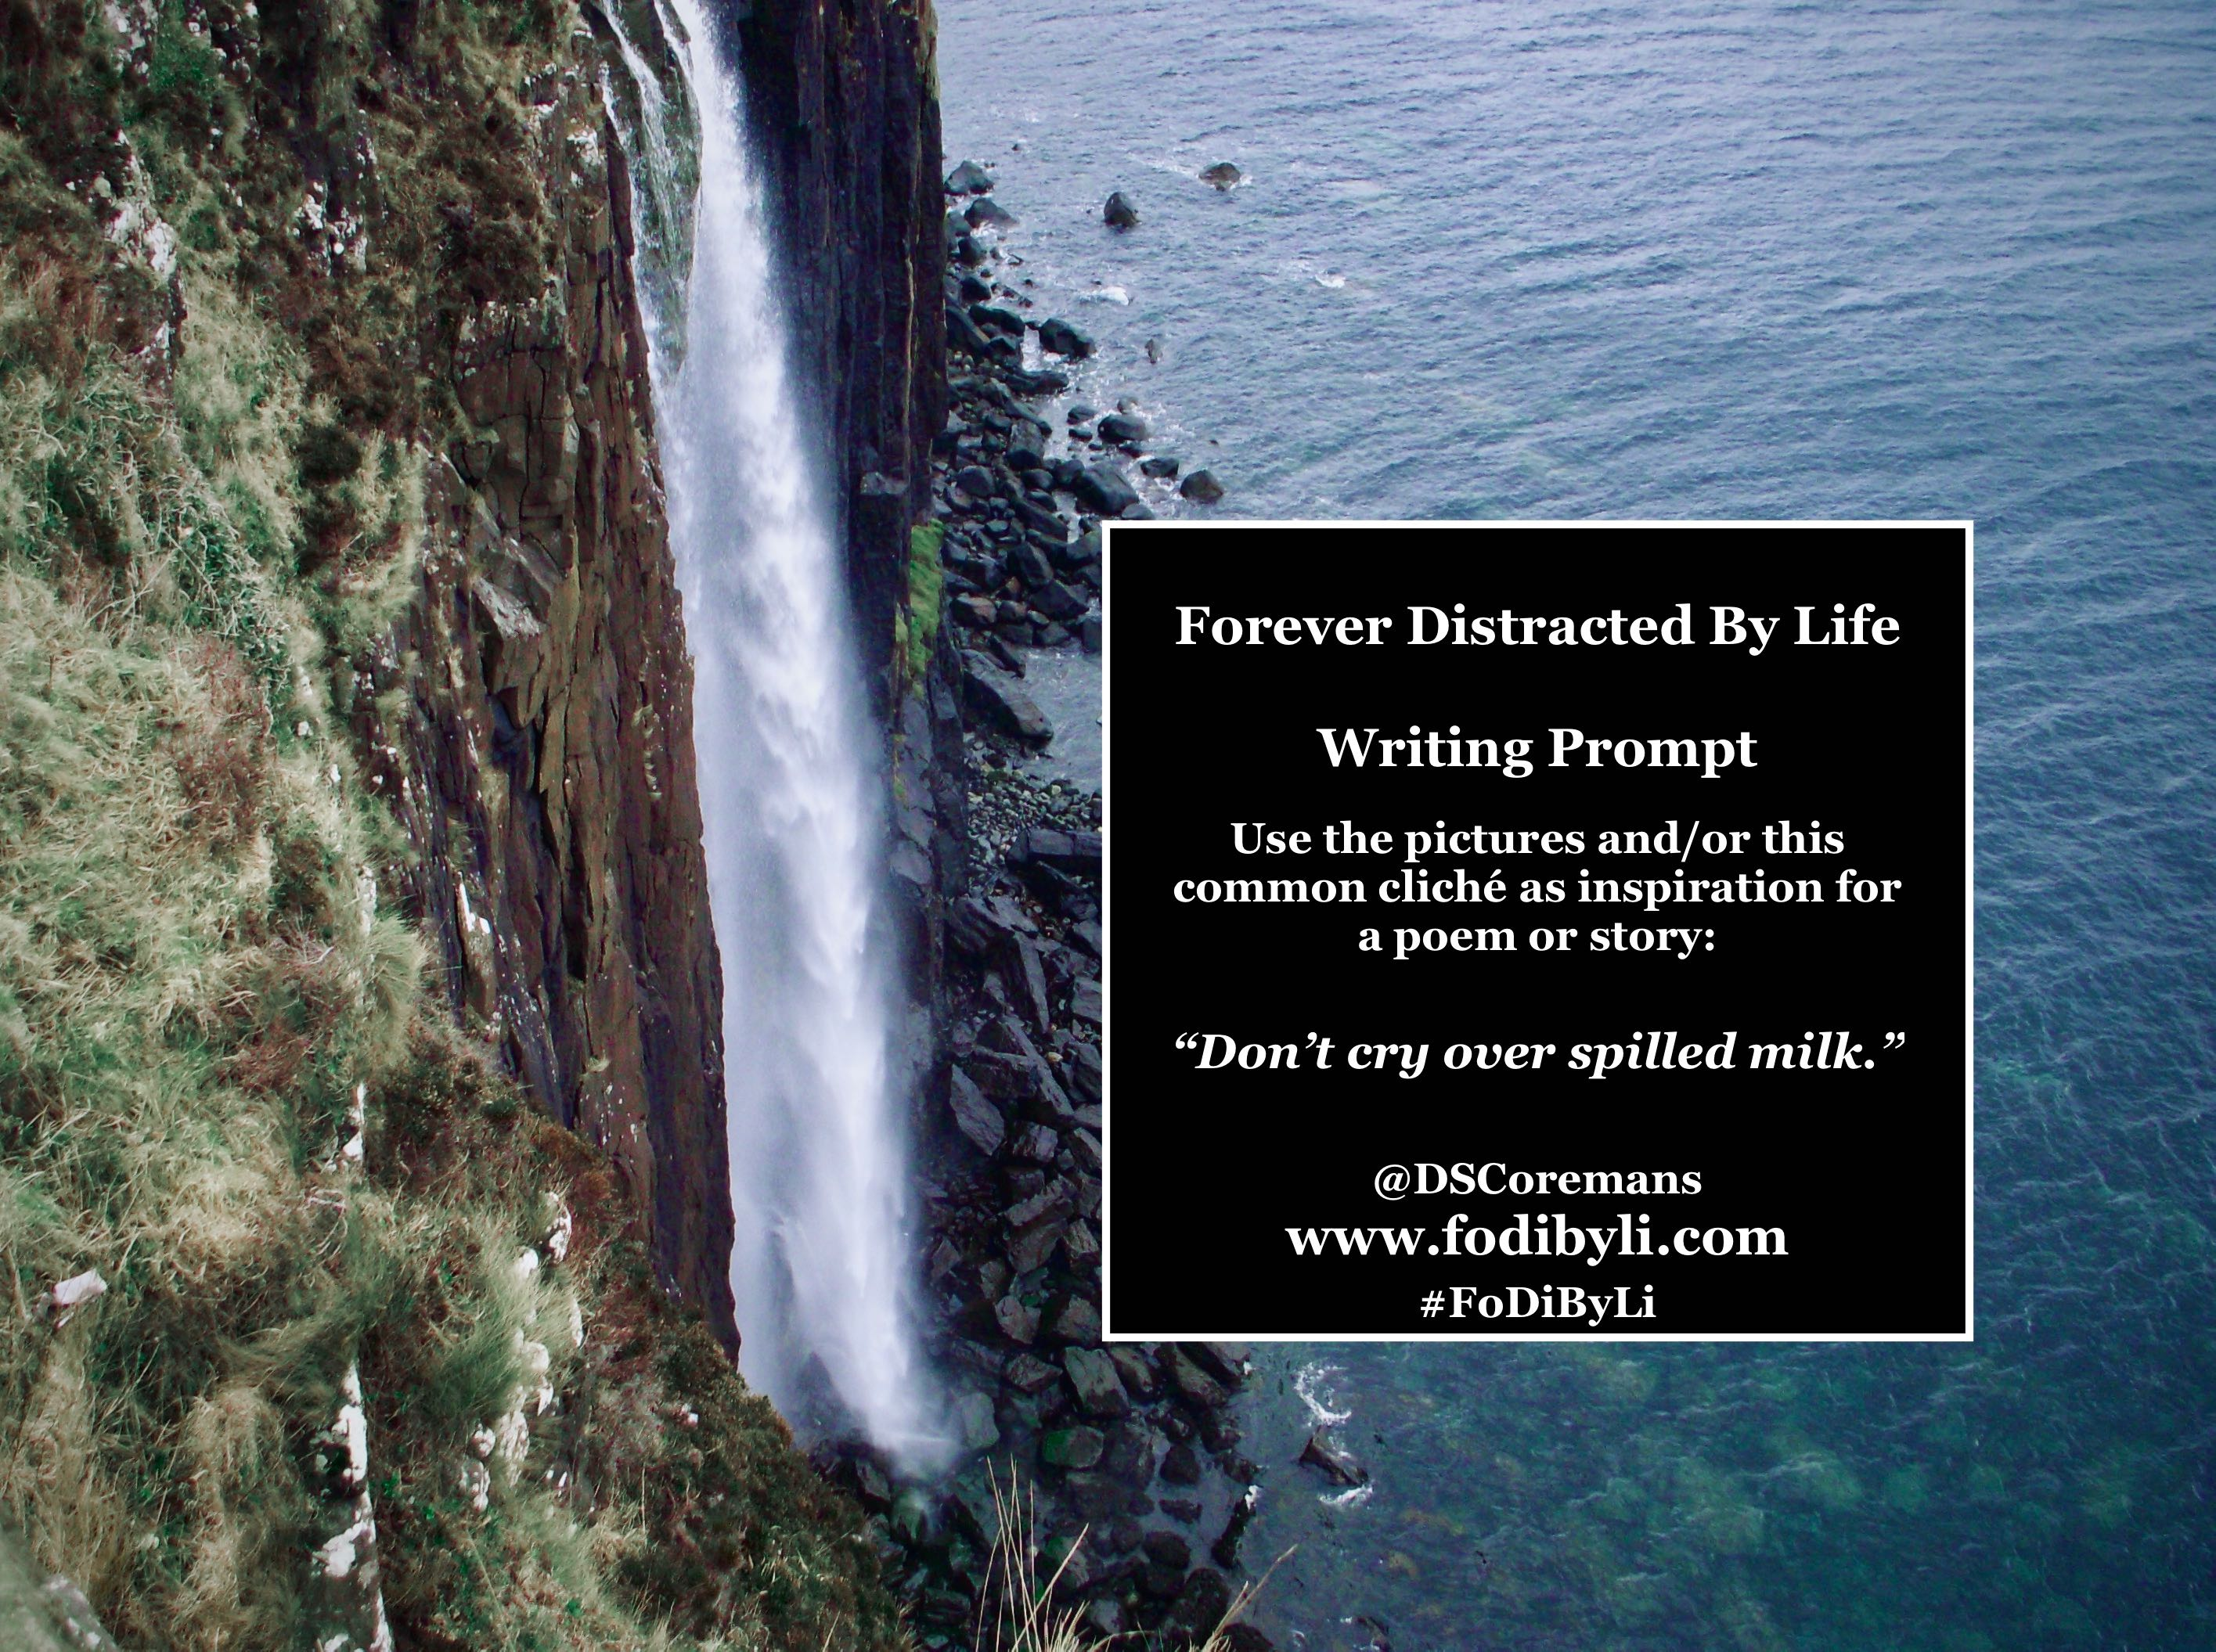 #FoDiByLi Writing Prompt: Common Cliché #2